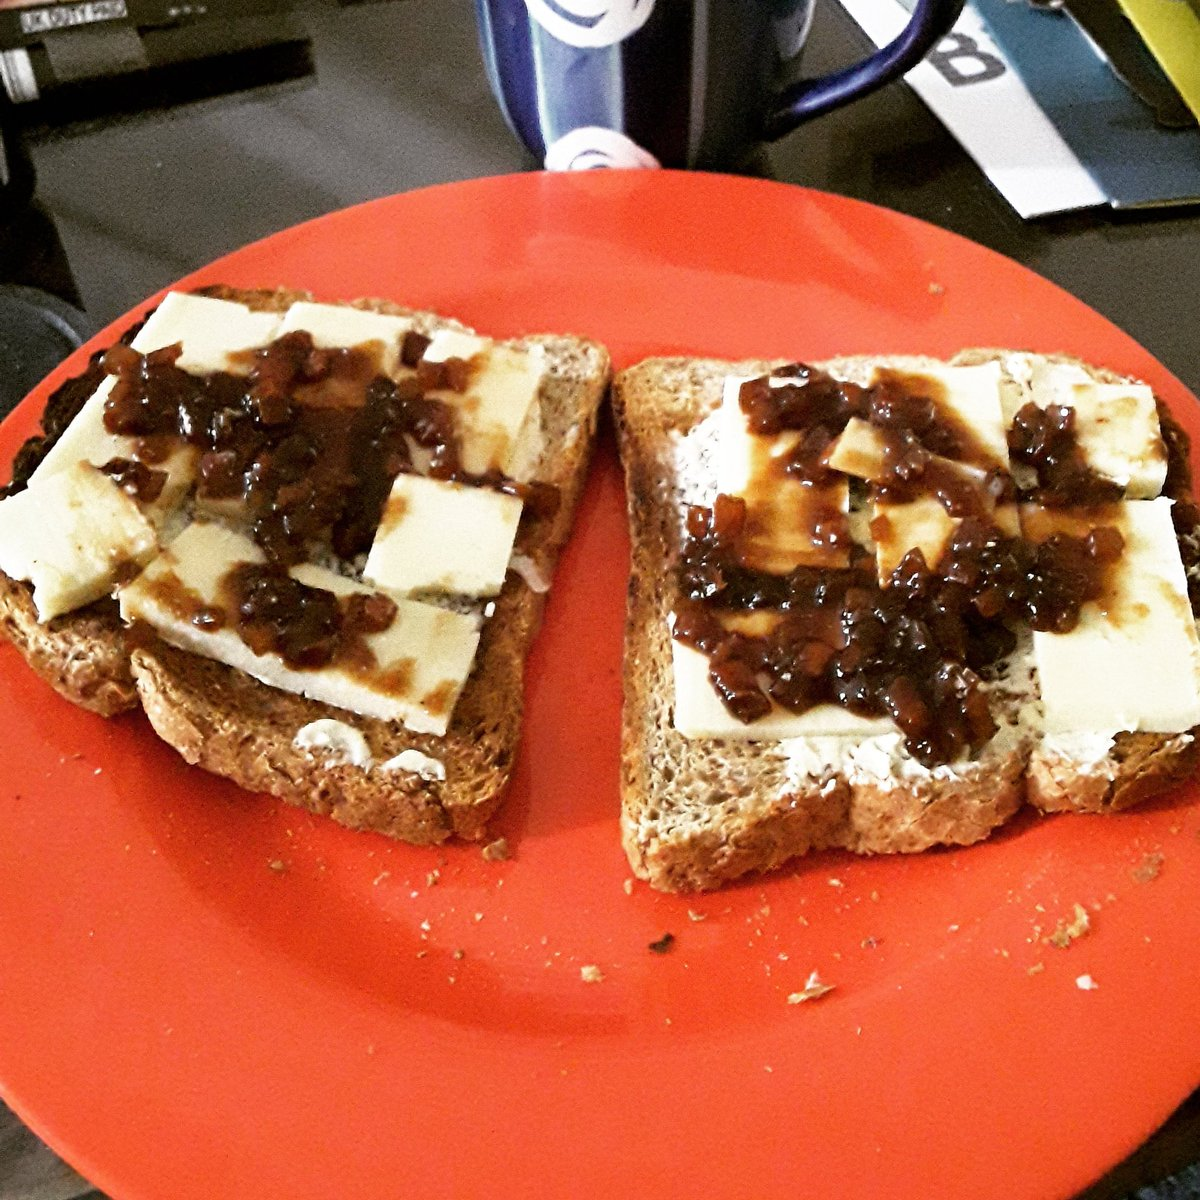 With absence of #restaurants & #Kitchen being teated to homemade Welsh Classic #comfortfood #Lunch at friend #DavidWilliams's in #Hertfordshire. Brown bread toasted, #Caerphilly #Cheddar #Cheese with @BranstonUK #BranstonPickle. Perfect recovery food. #LetsGuide #UniquelyLondon https://t.co/EWwbiR3Ts8